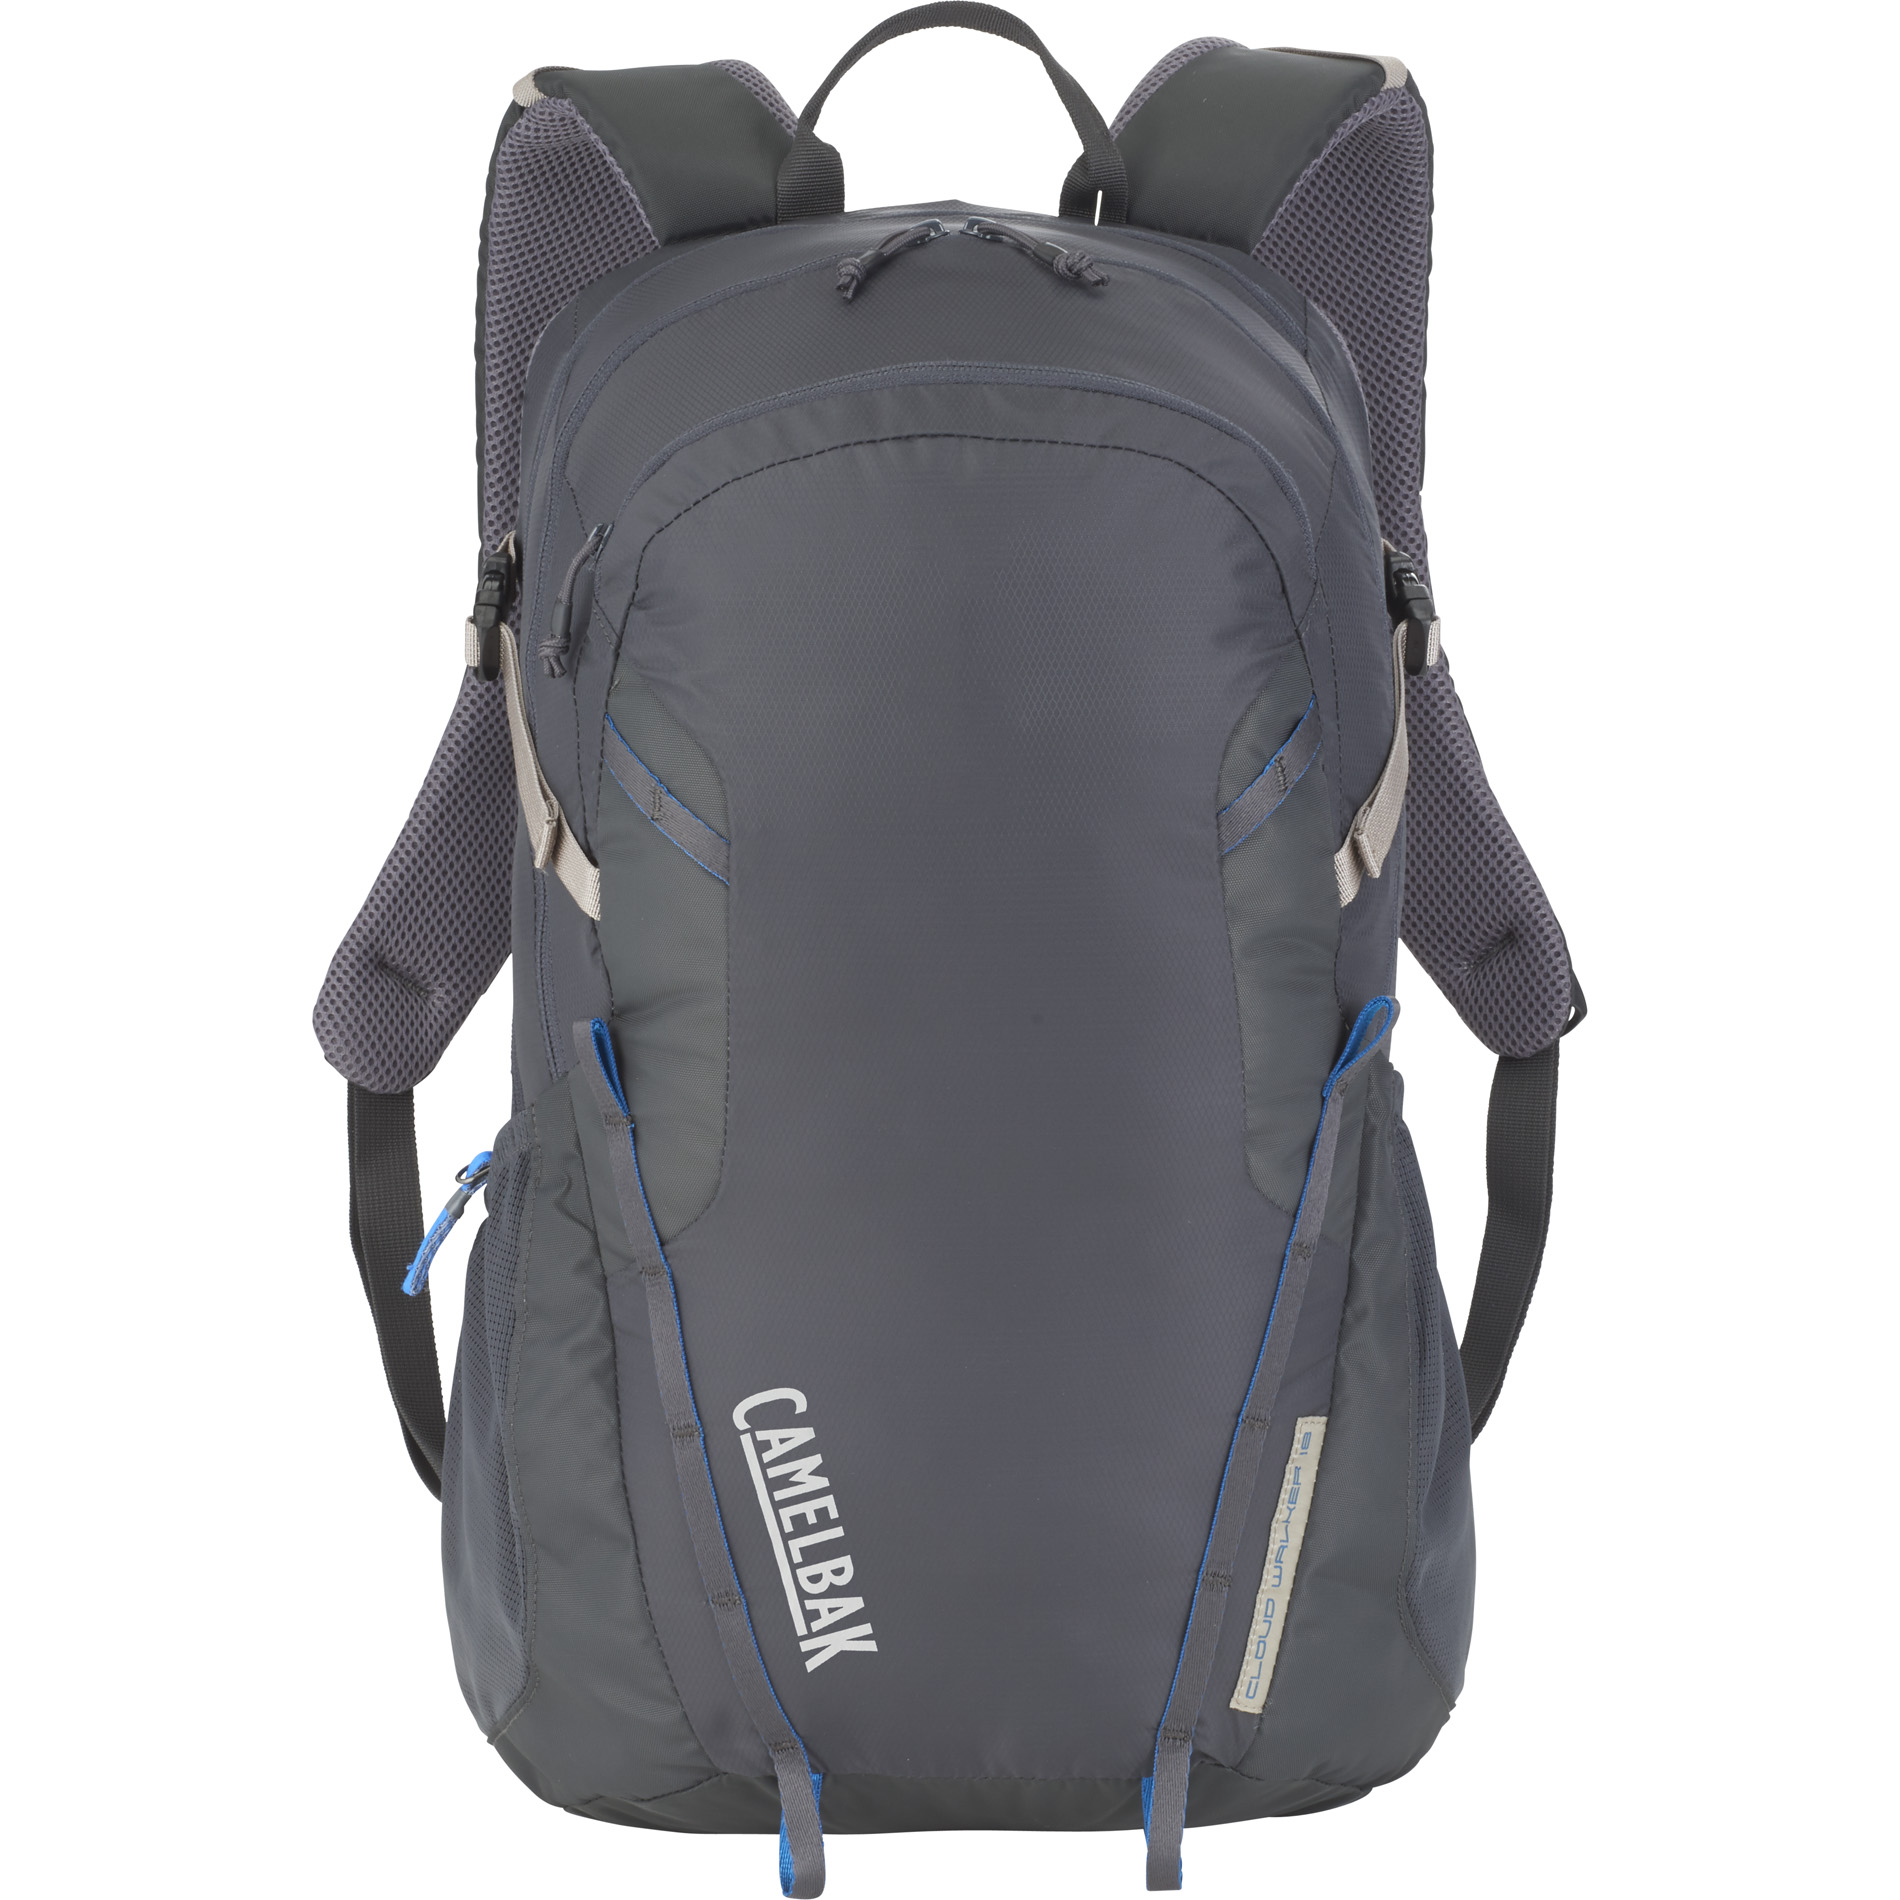 CamelBak 1627-53 - Cloud Walker 18L Backpack